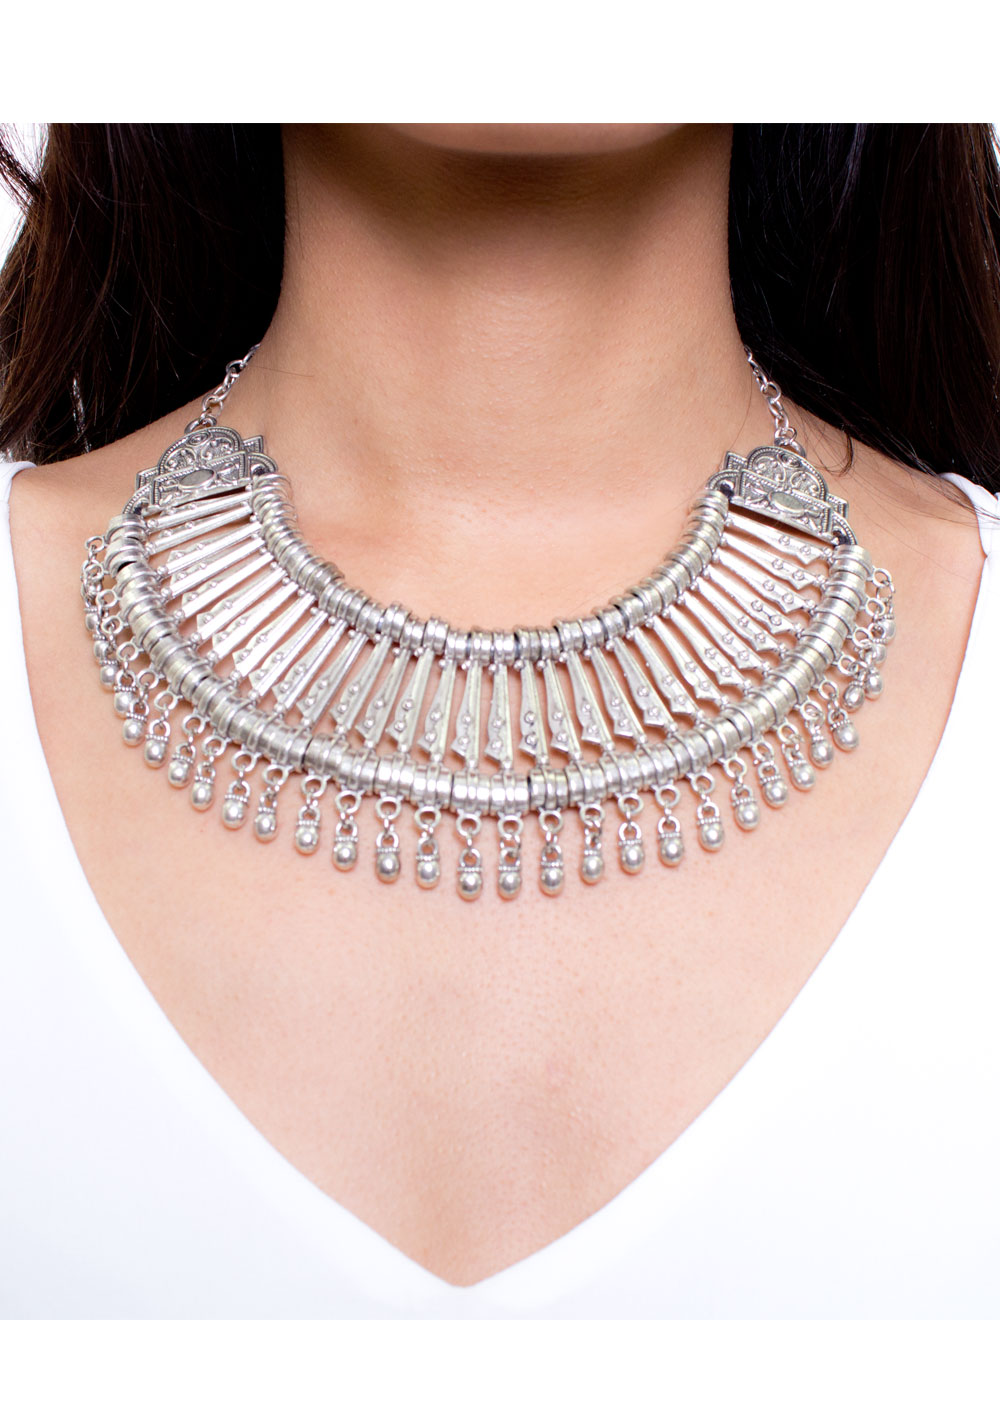 Zenda Necklace